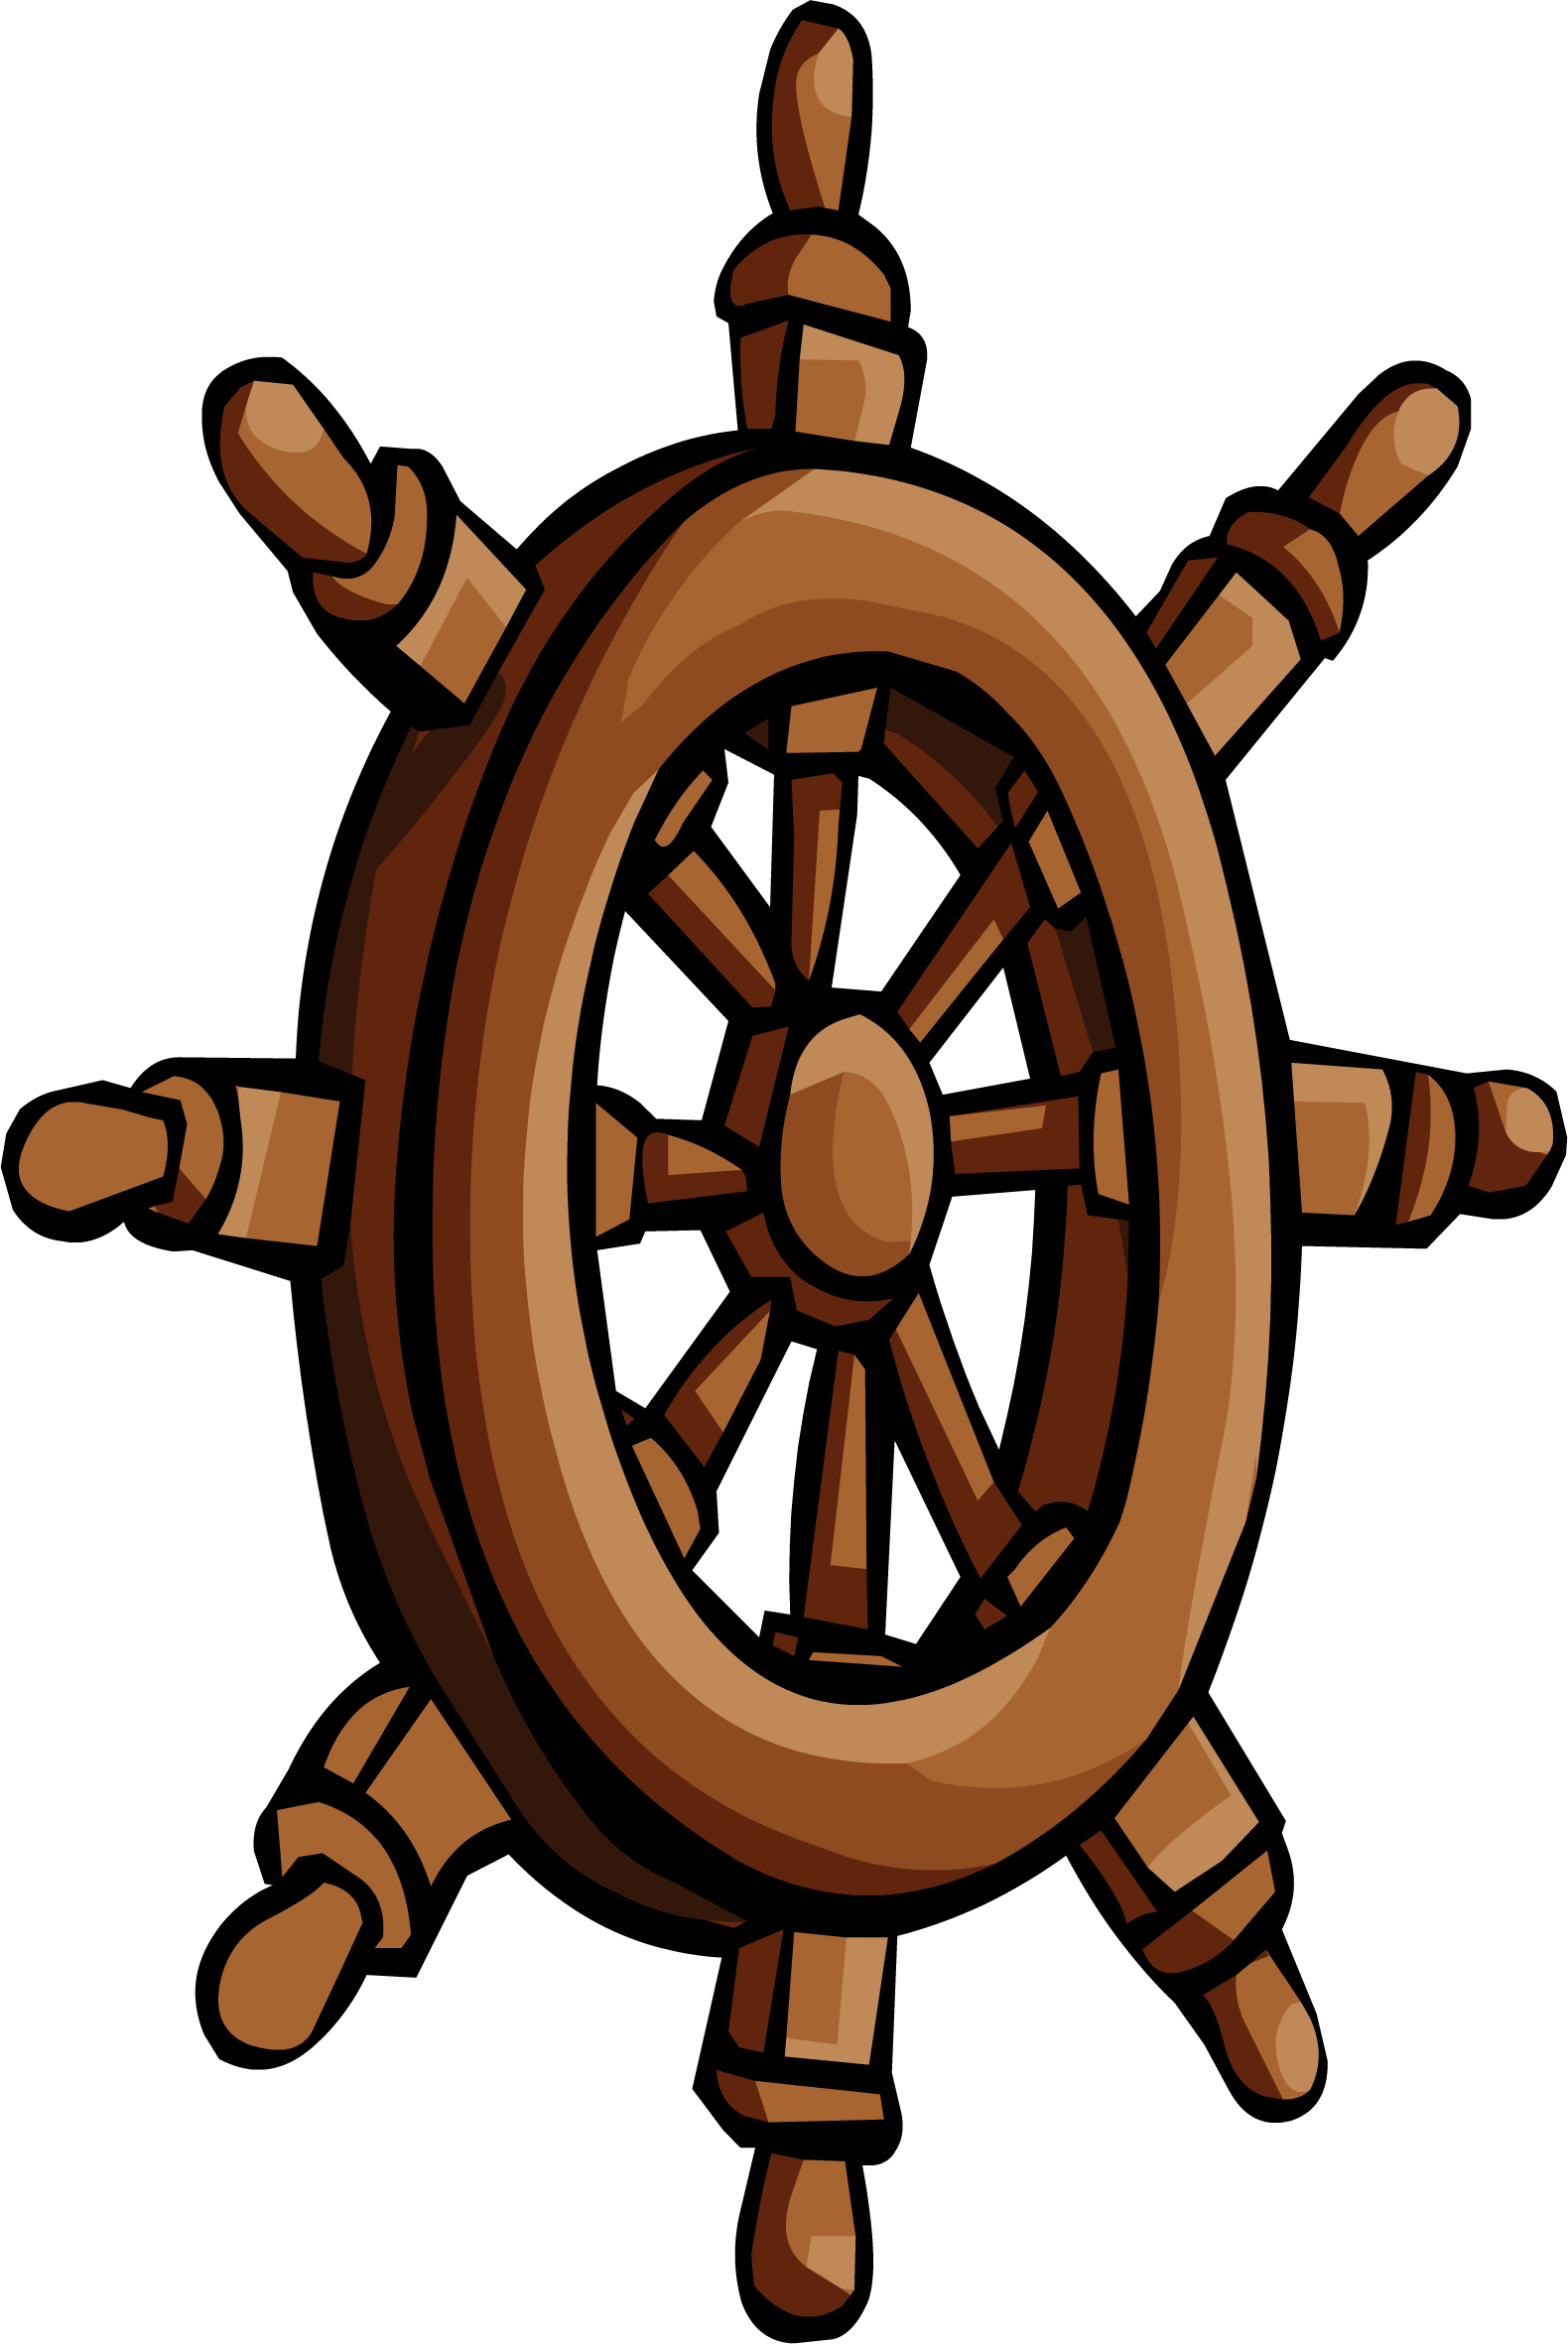 Captain clipart ship wheel. Image s sprite png